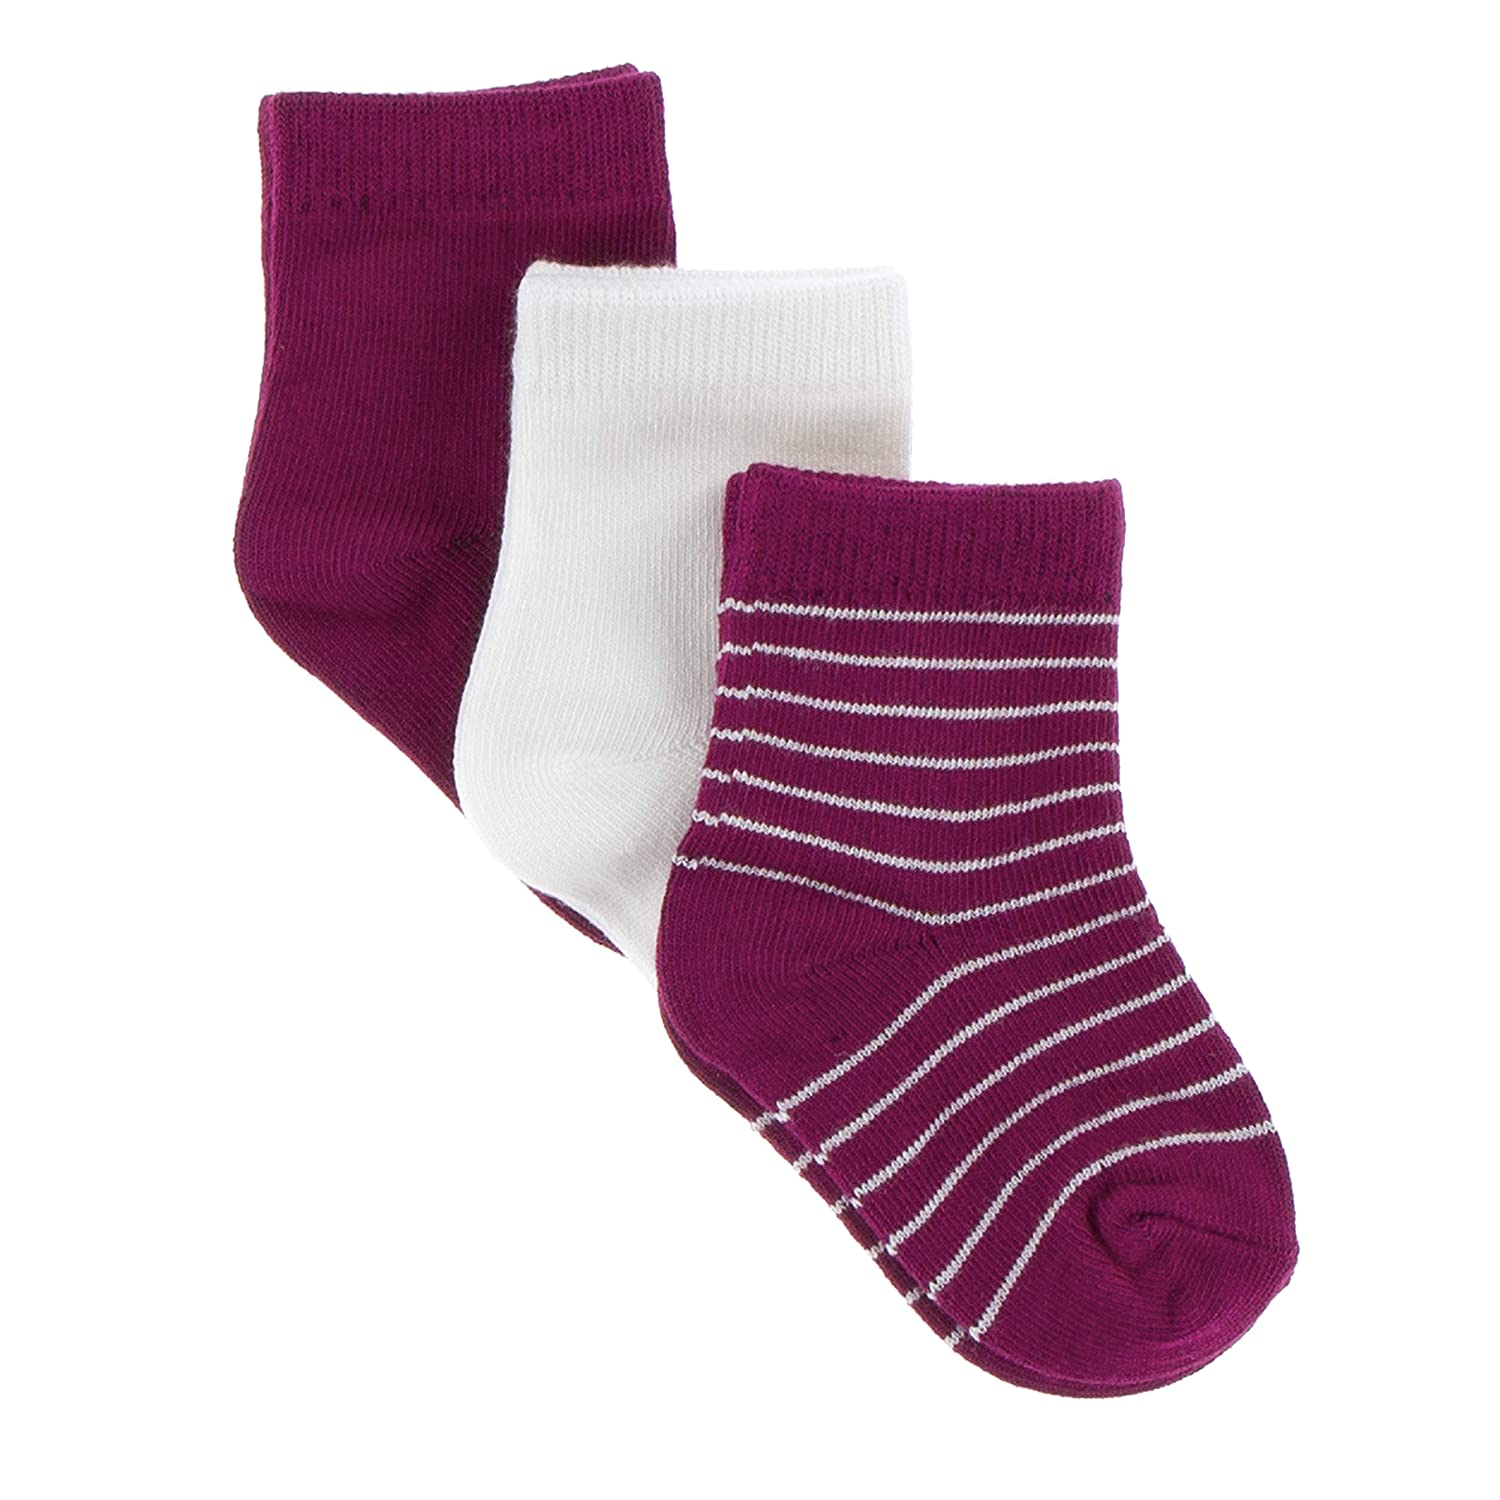 Tokyo Dragonfruit Stripe and Natural 2T-4T KicKee Pants Sock Set in Dragonfruit